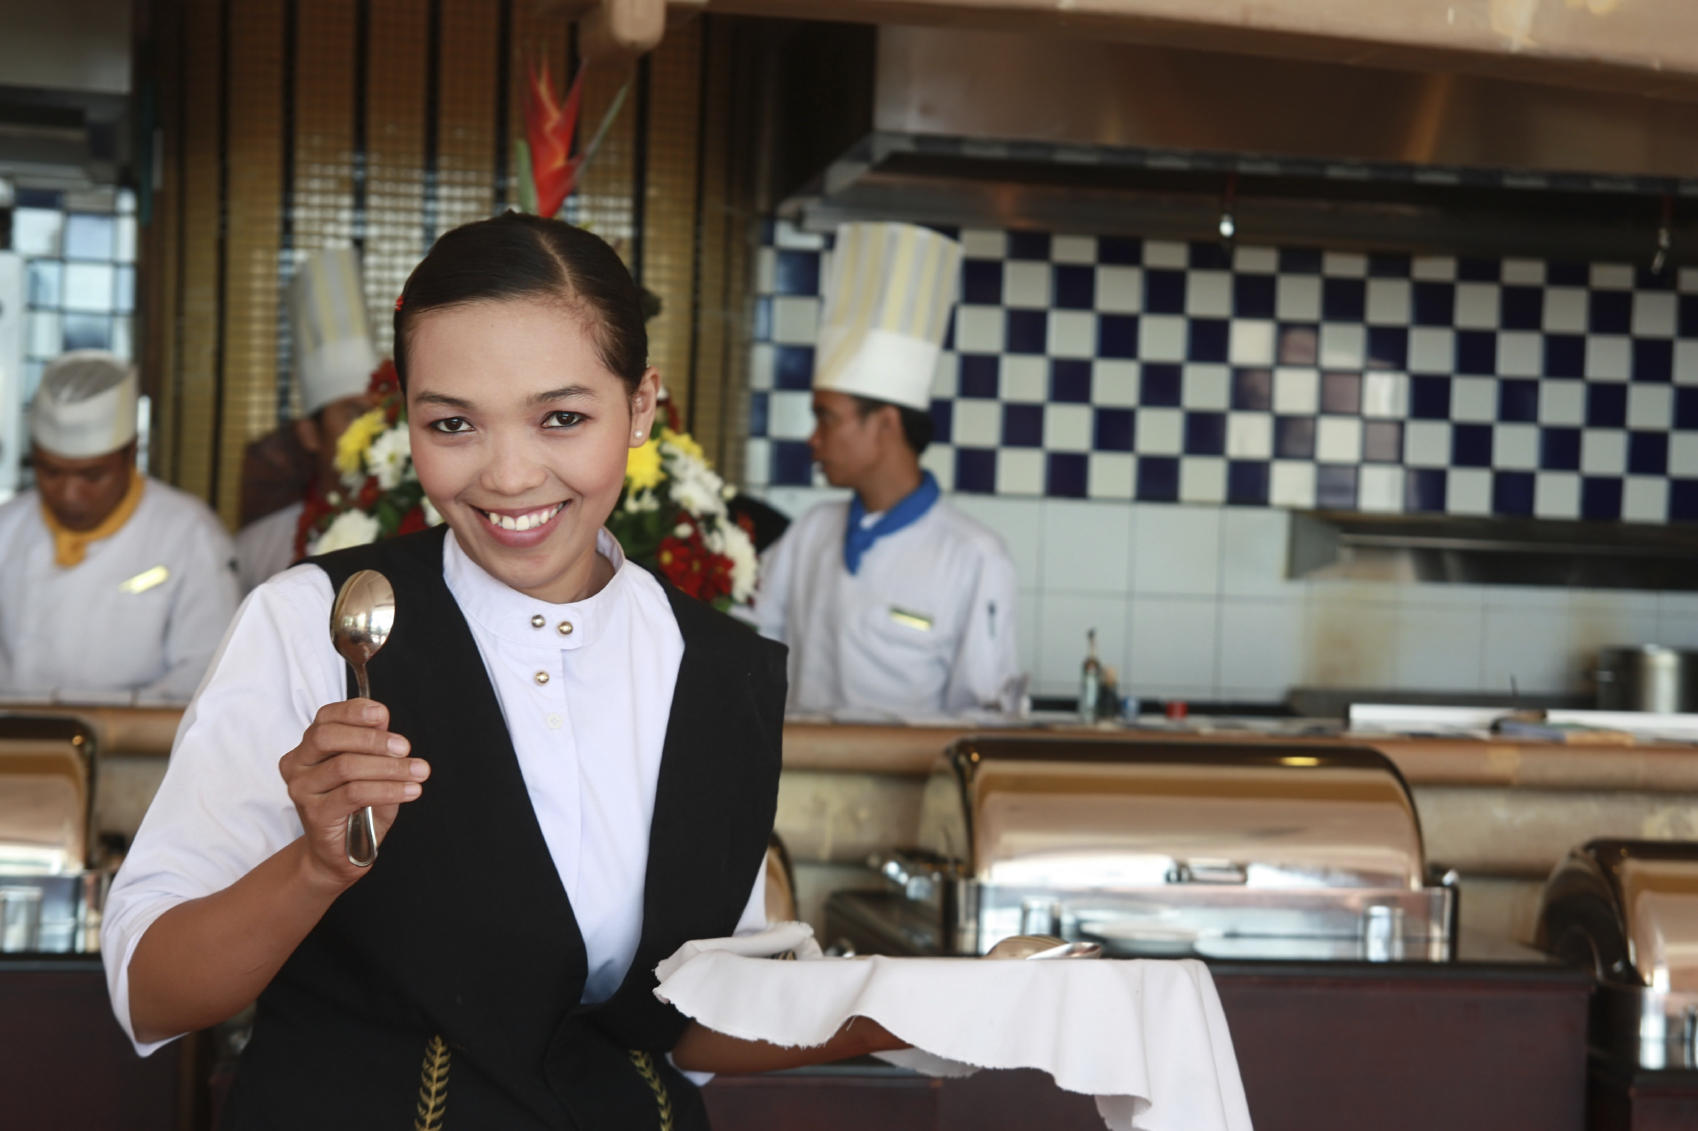 How to hire staff for your restaurant